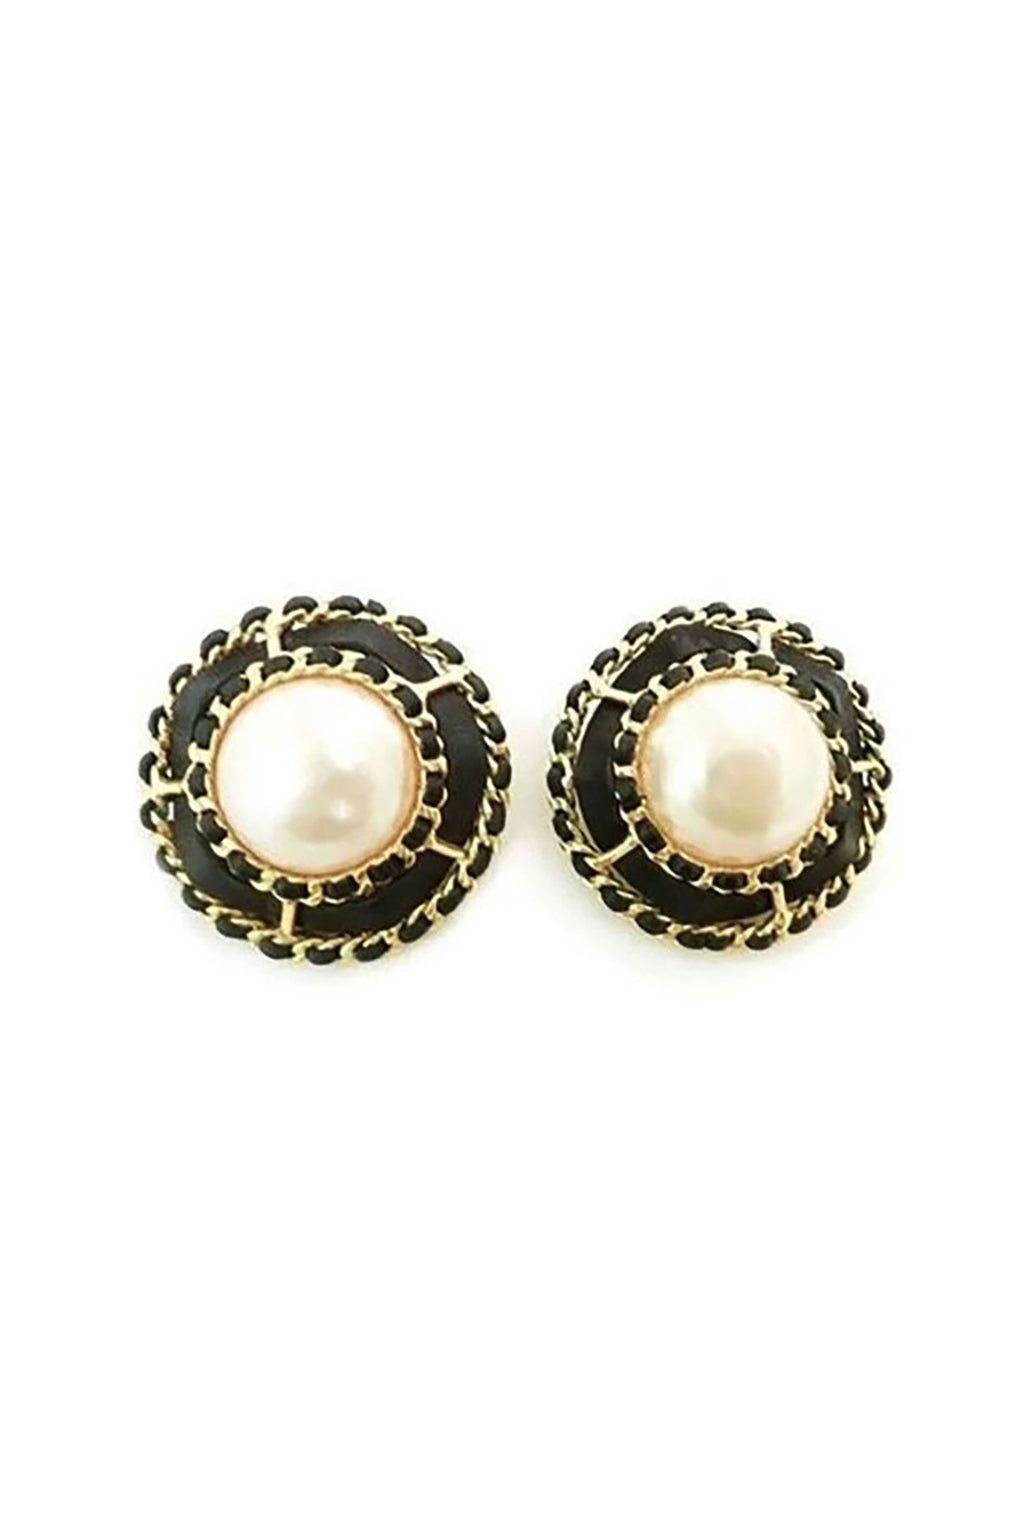 Vintage 1970's Large Signed Chanel 25 Earrings